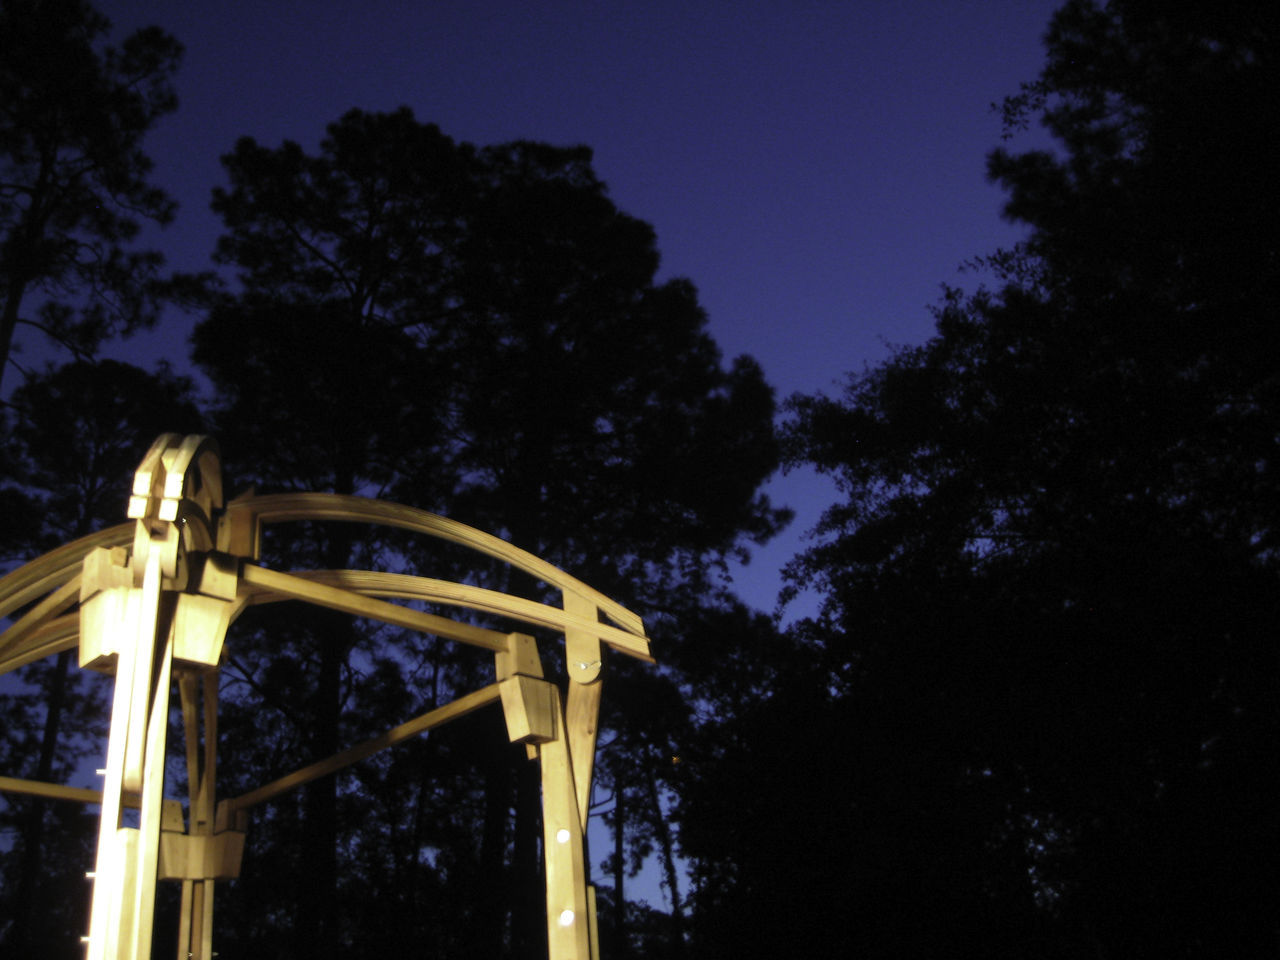 This photograph was taken late at night and focuses on an architecturally designed, hand-built wooden gazebo - which was actually used as a wedding altar. Altar Architectural Detail Architecture Blue Built Structure Dramatic Sky Dusk Gazebo Glow Handmade Low Angle View Moody Sky Night Outdoors Sky Structure Sunset Treescape Woodworking